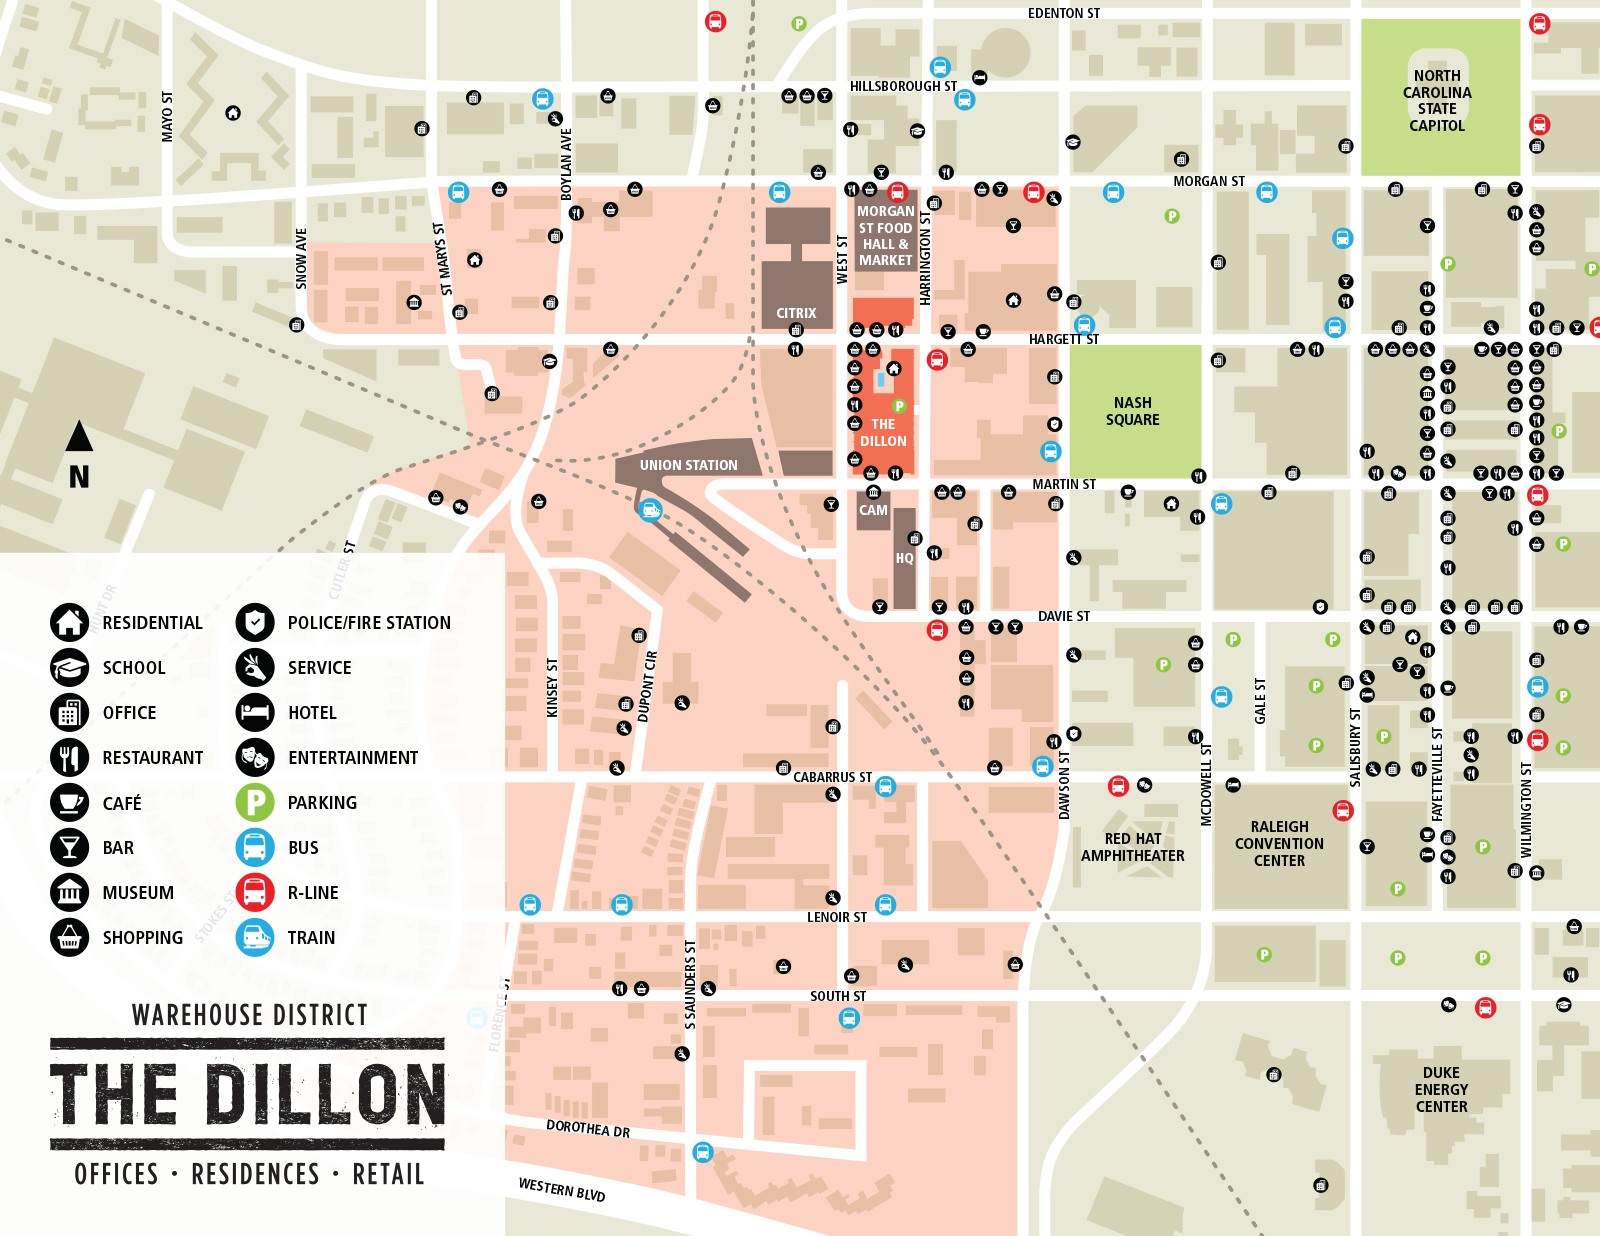 Warehouse District - The Dillon Raleigh